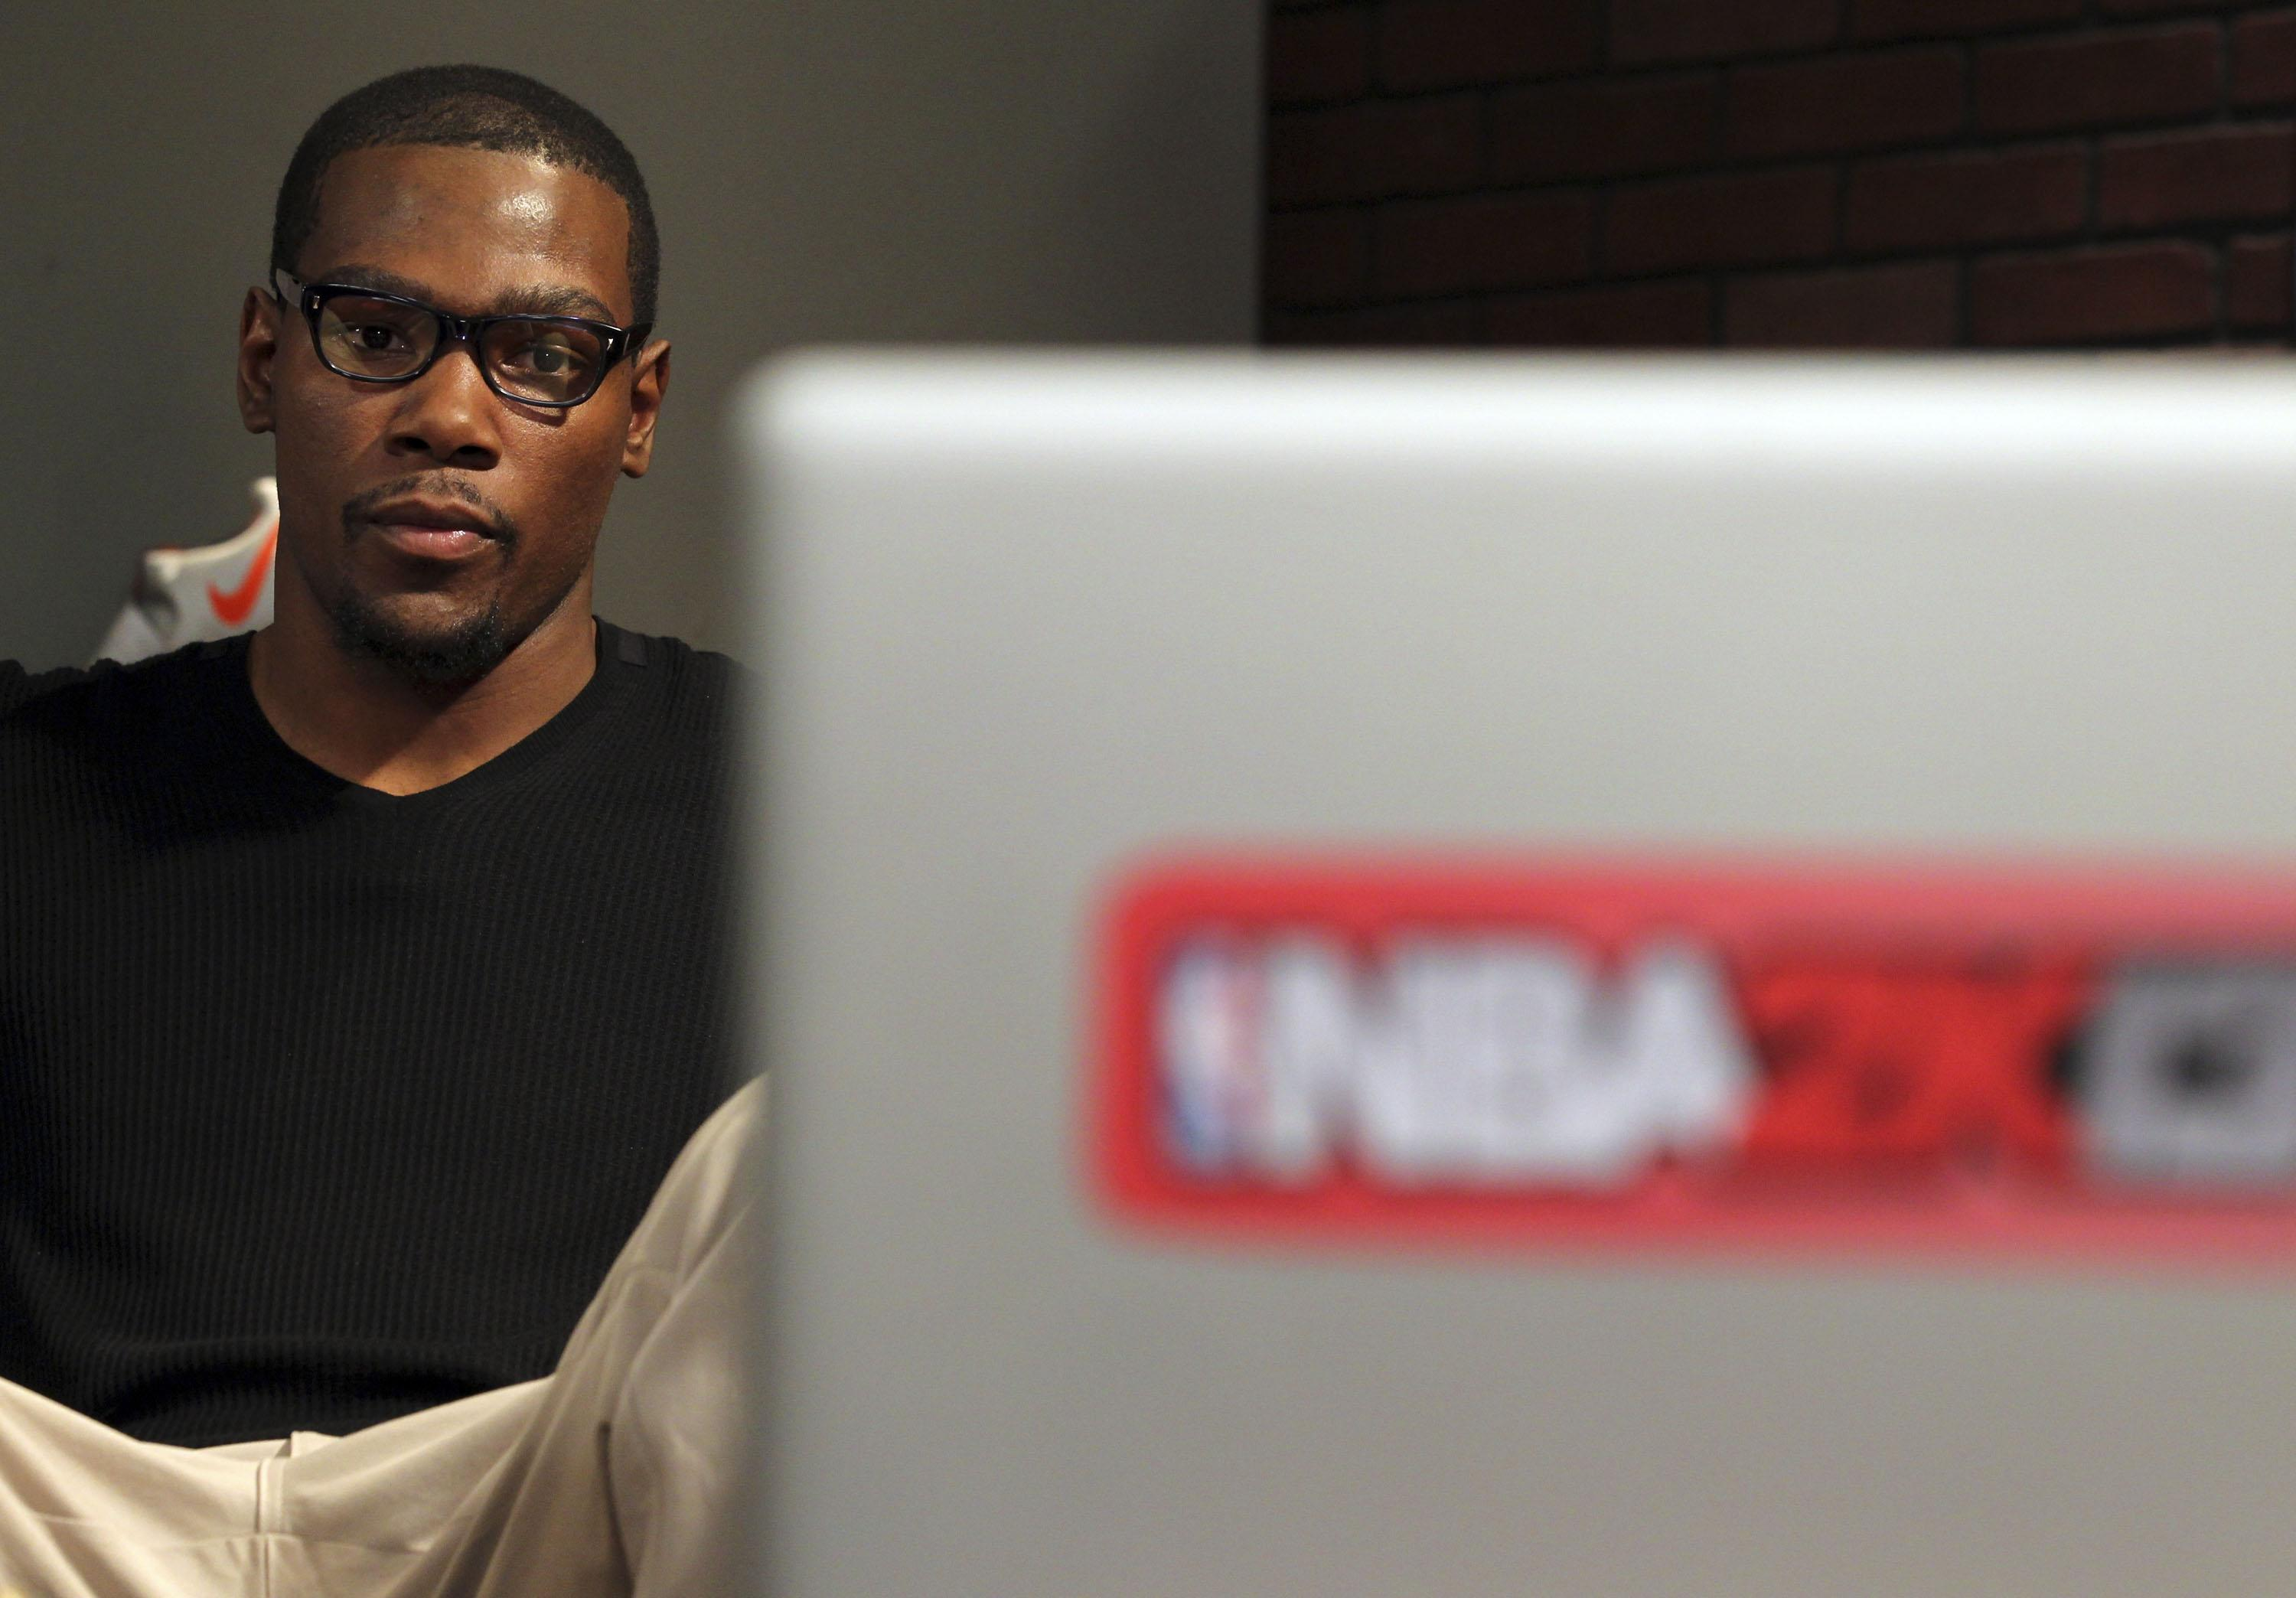 Ahead of NBA 2K players-only championship, league considers doing more even when live sports return